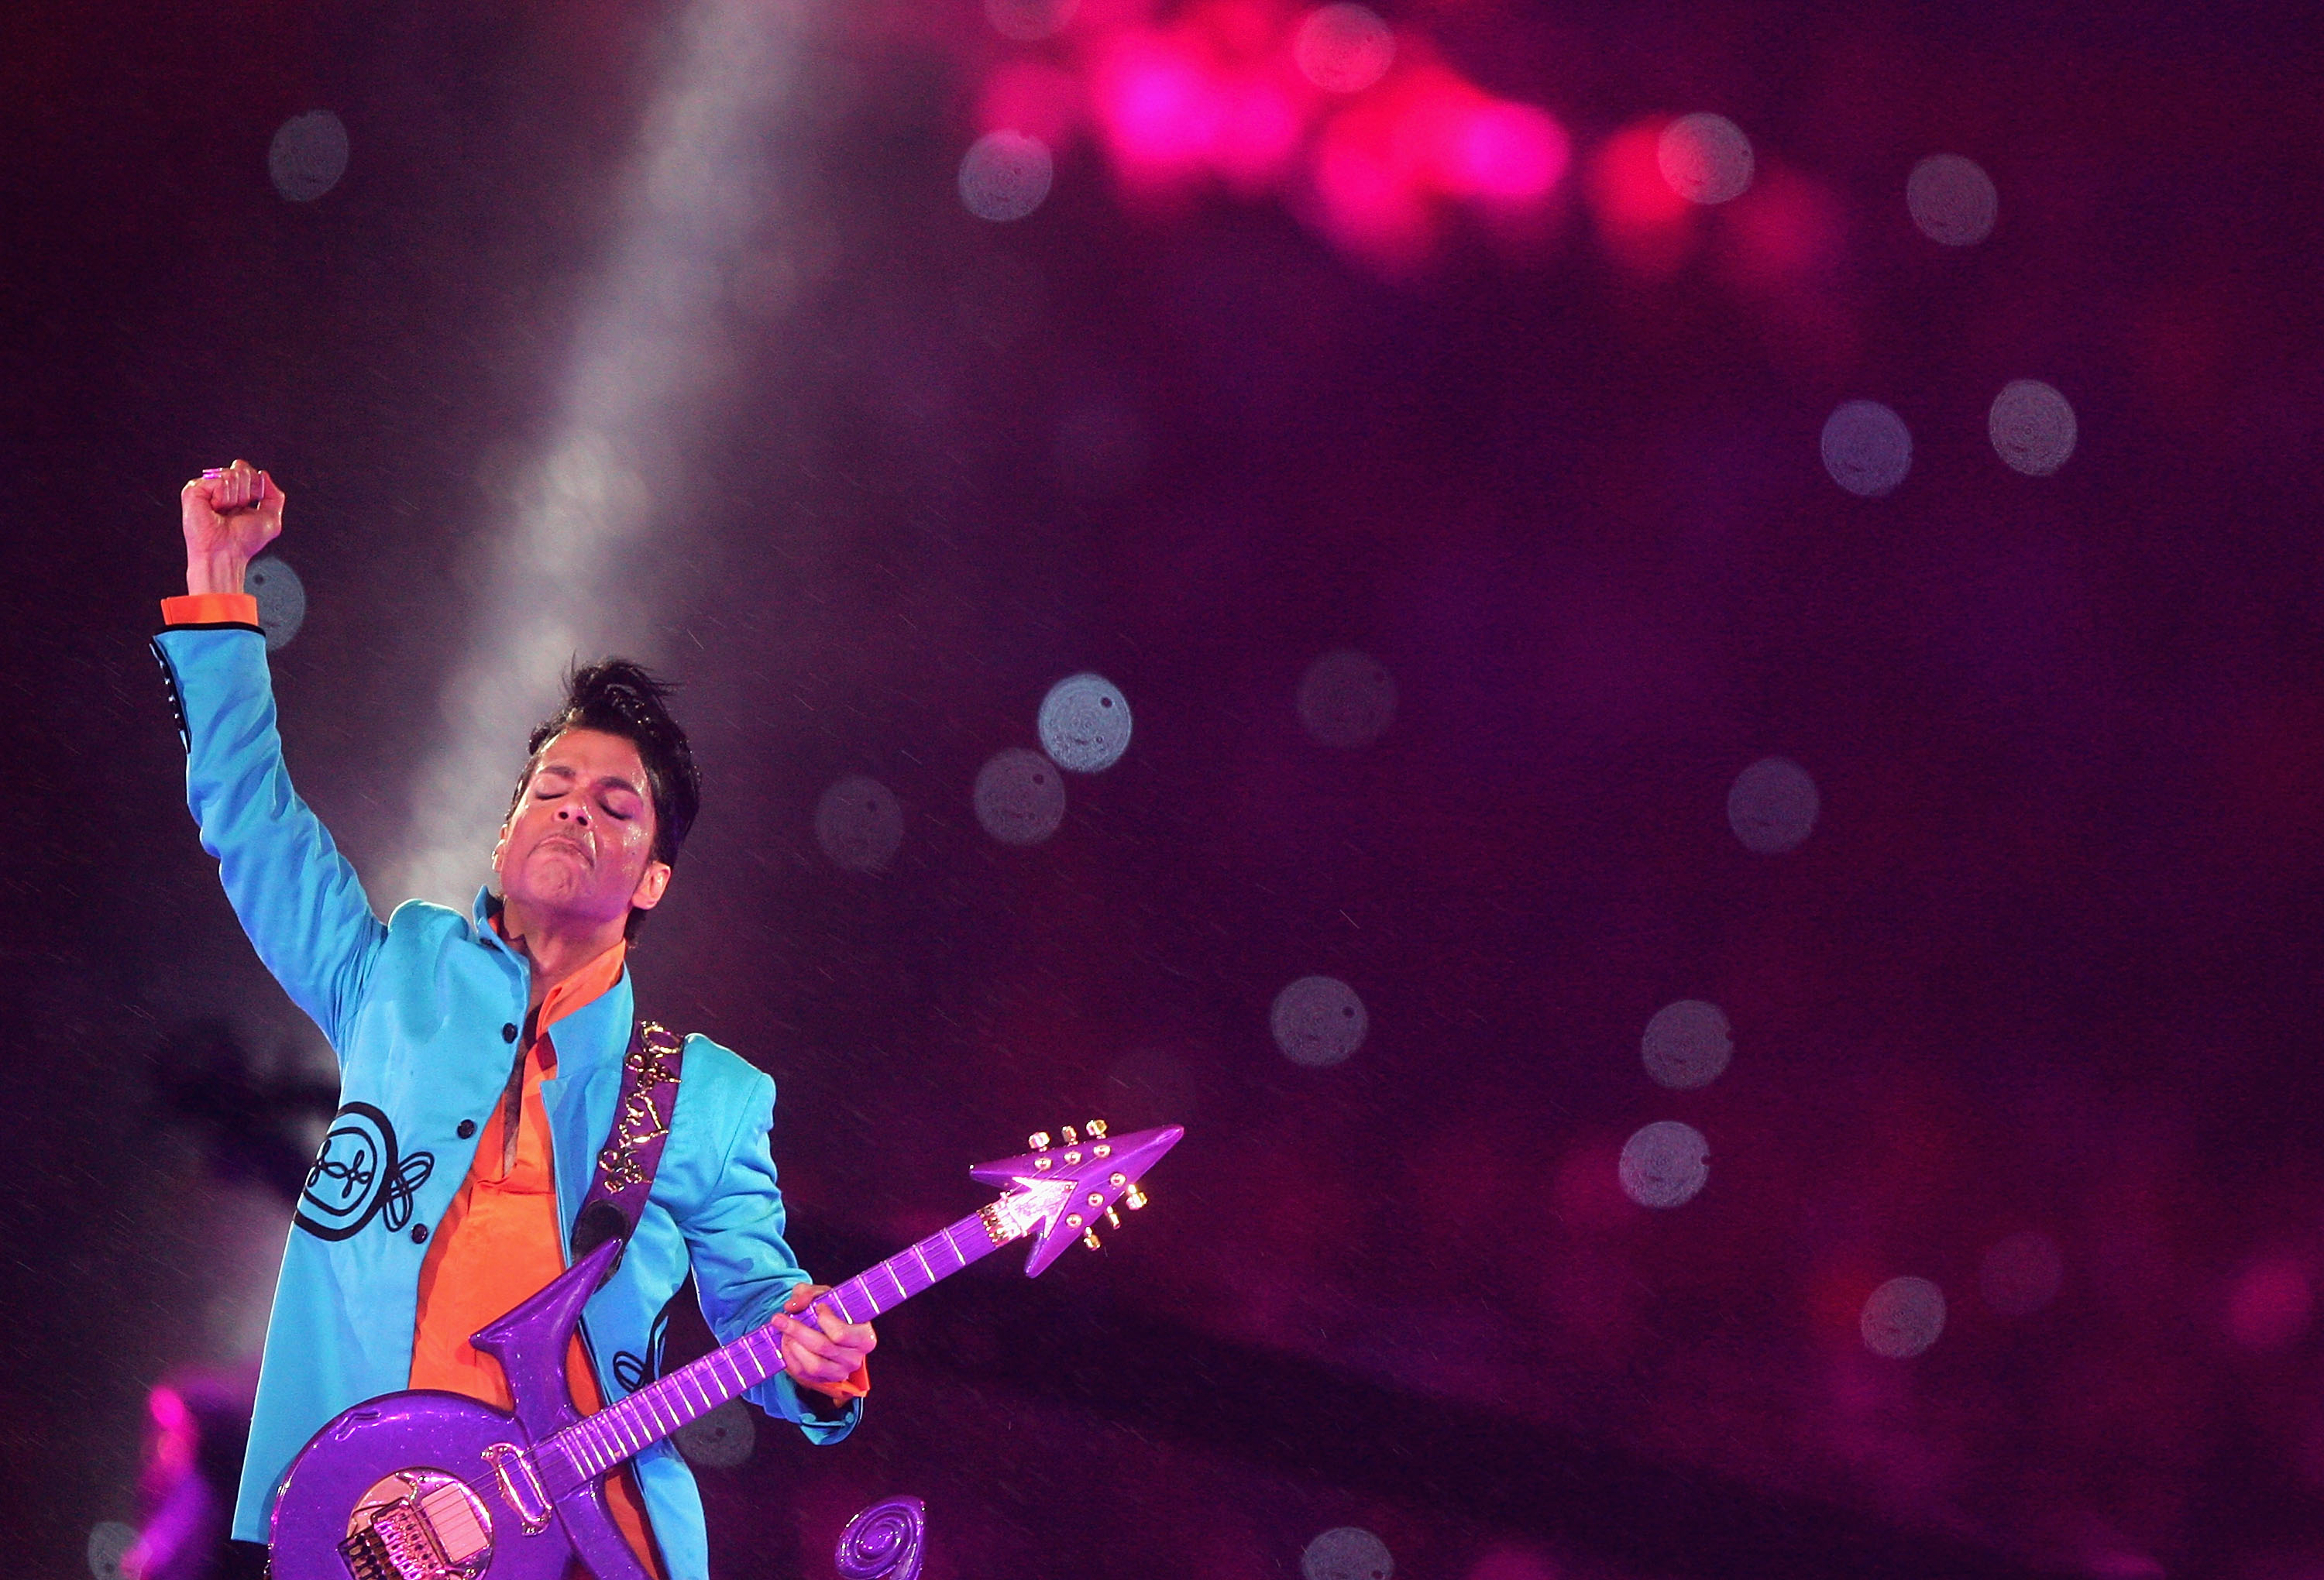 Prince hd wallpaper background image 3000x2040 id - Prince wallpaper ...